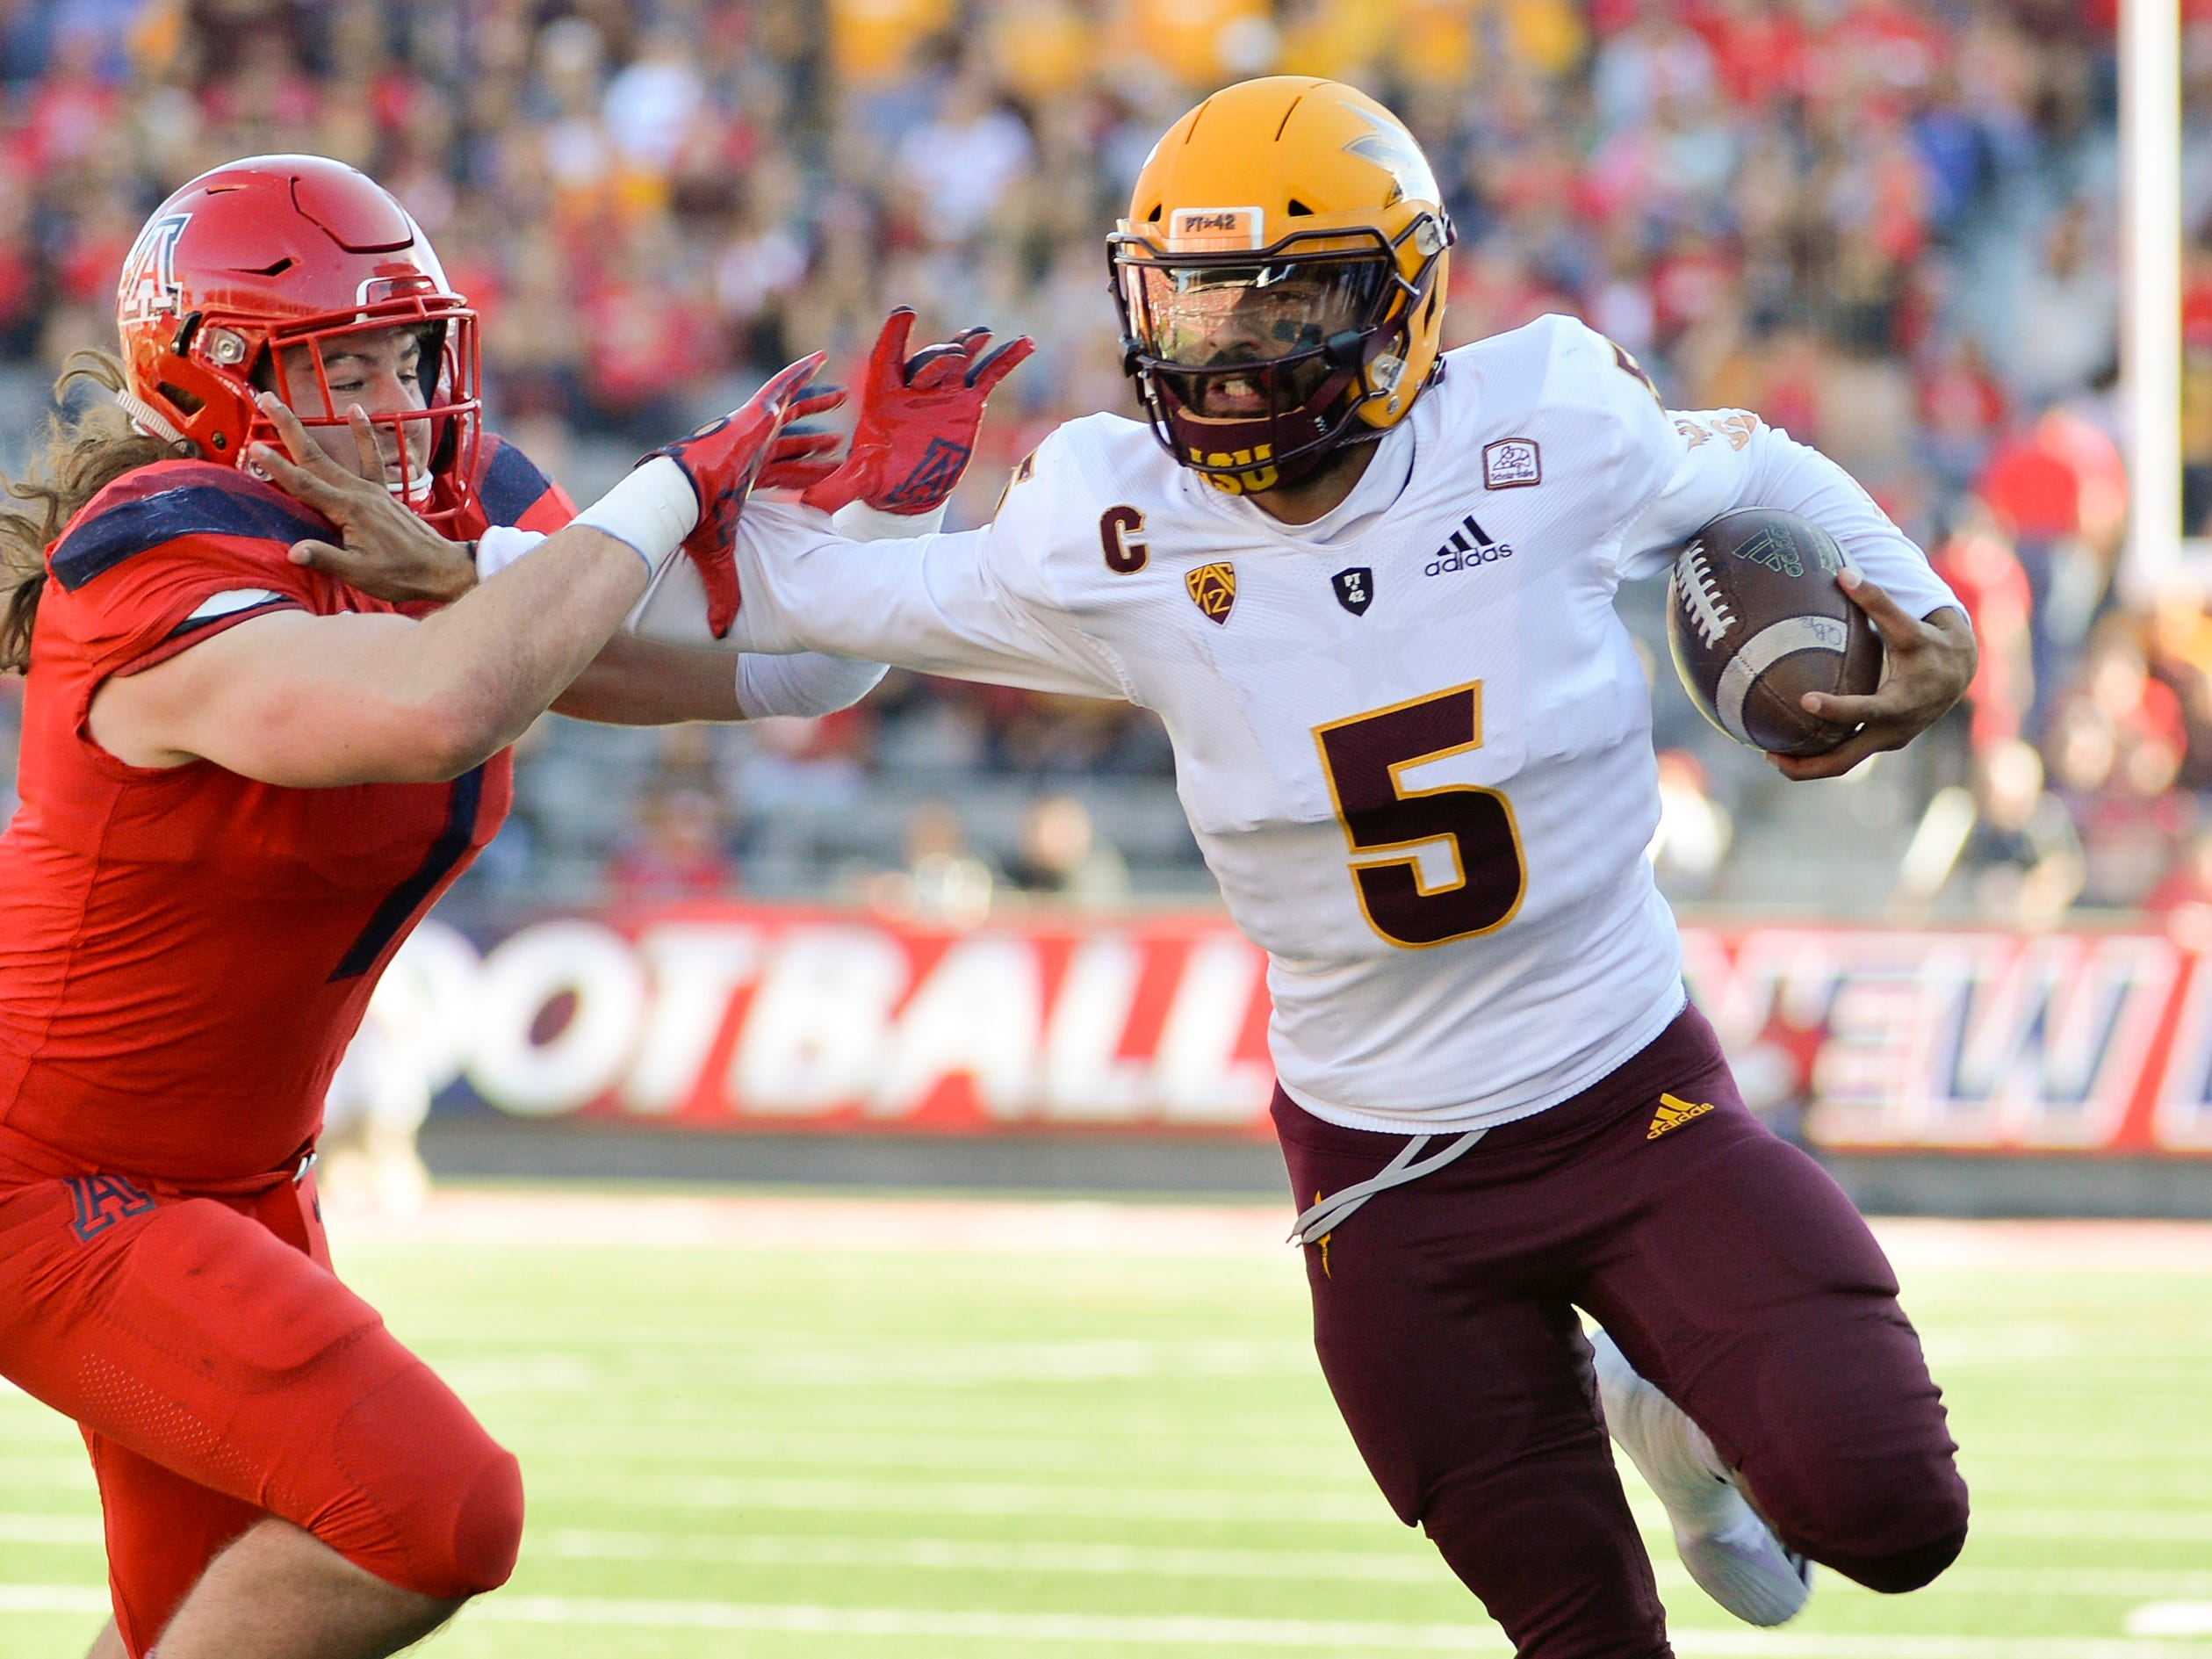 Nov 24, 2018; Tucson, AZ, USA; Arizona State Sun Devils quarterback Manny Wilkins (5) runs the ball against Arizona Wildcats linebacker Colin Schooler (7) during the first half of the Territorial Cup at Arizona Stadium. Mandatory Credit: Casey Sapio-USA TODAY Sports